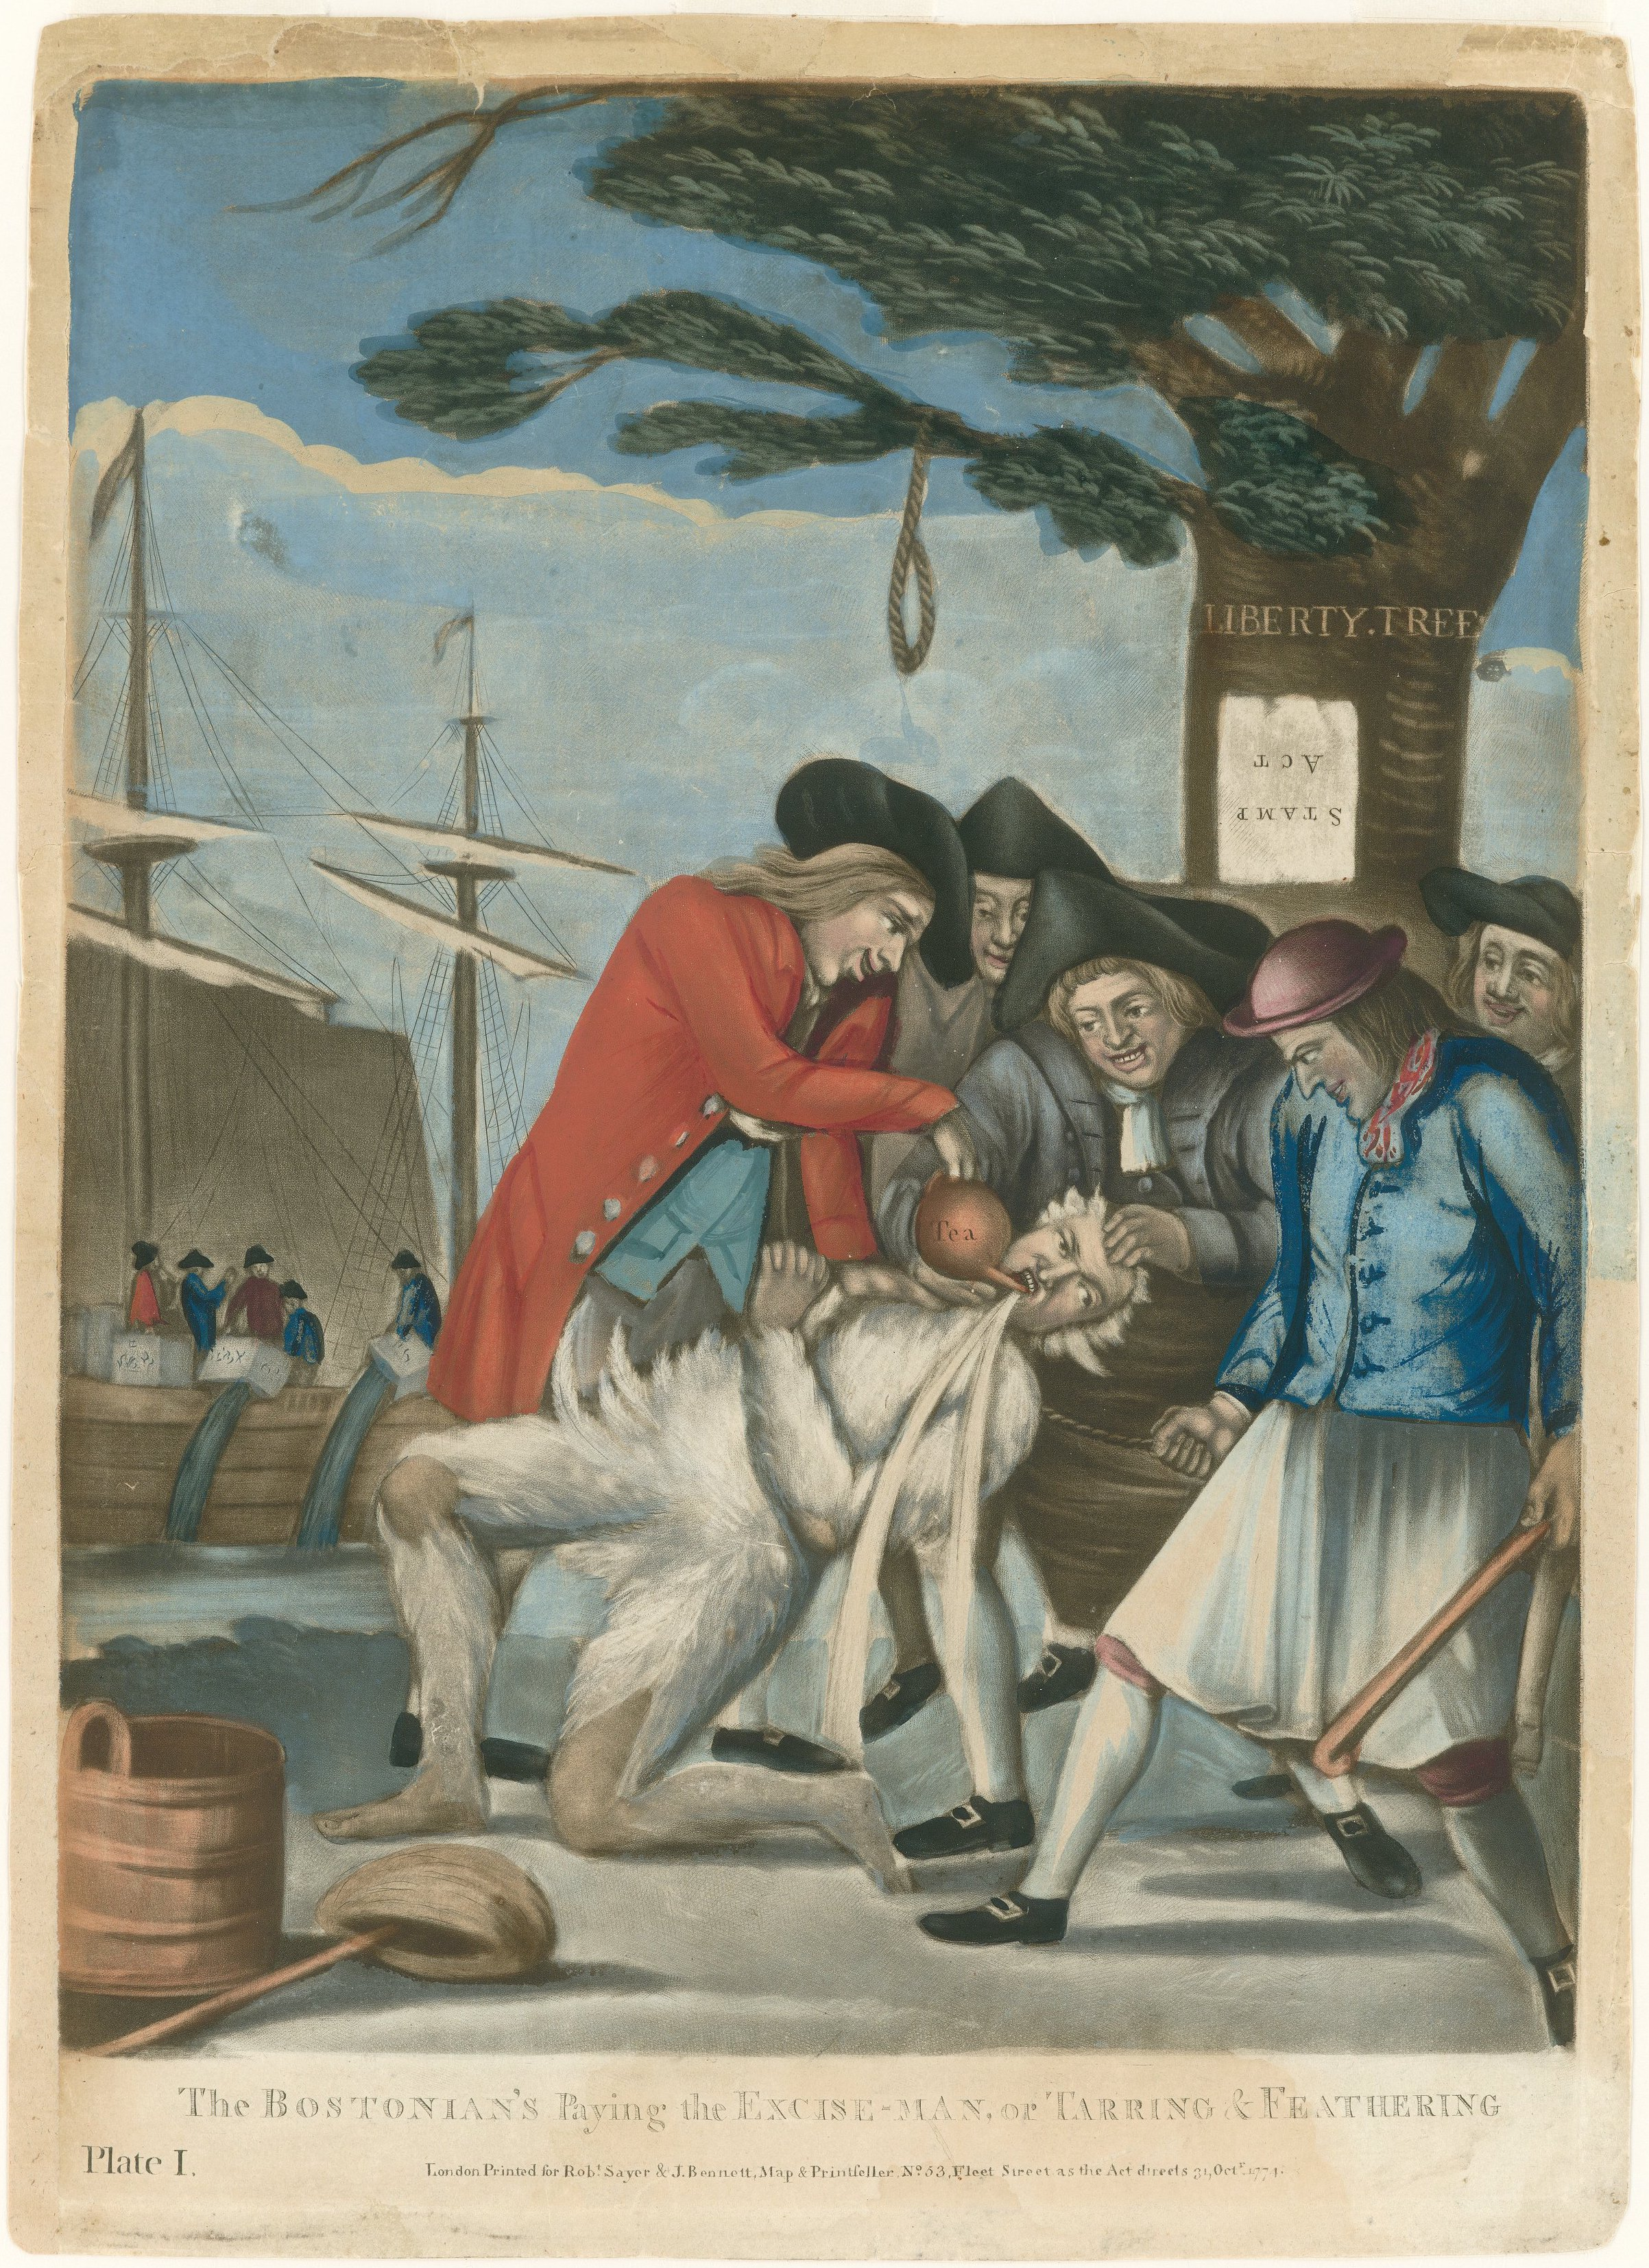 Bostonians Paying the Excise-man, or Tarring and Feathering (1774)